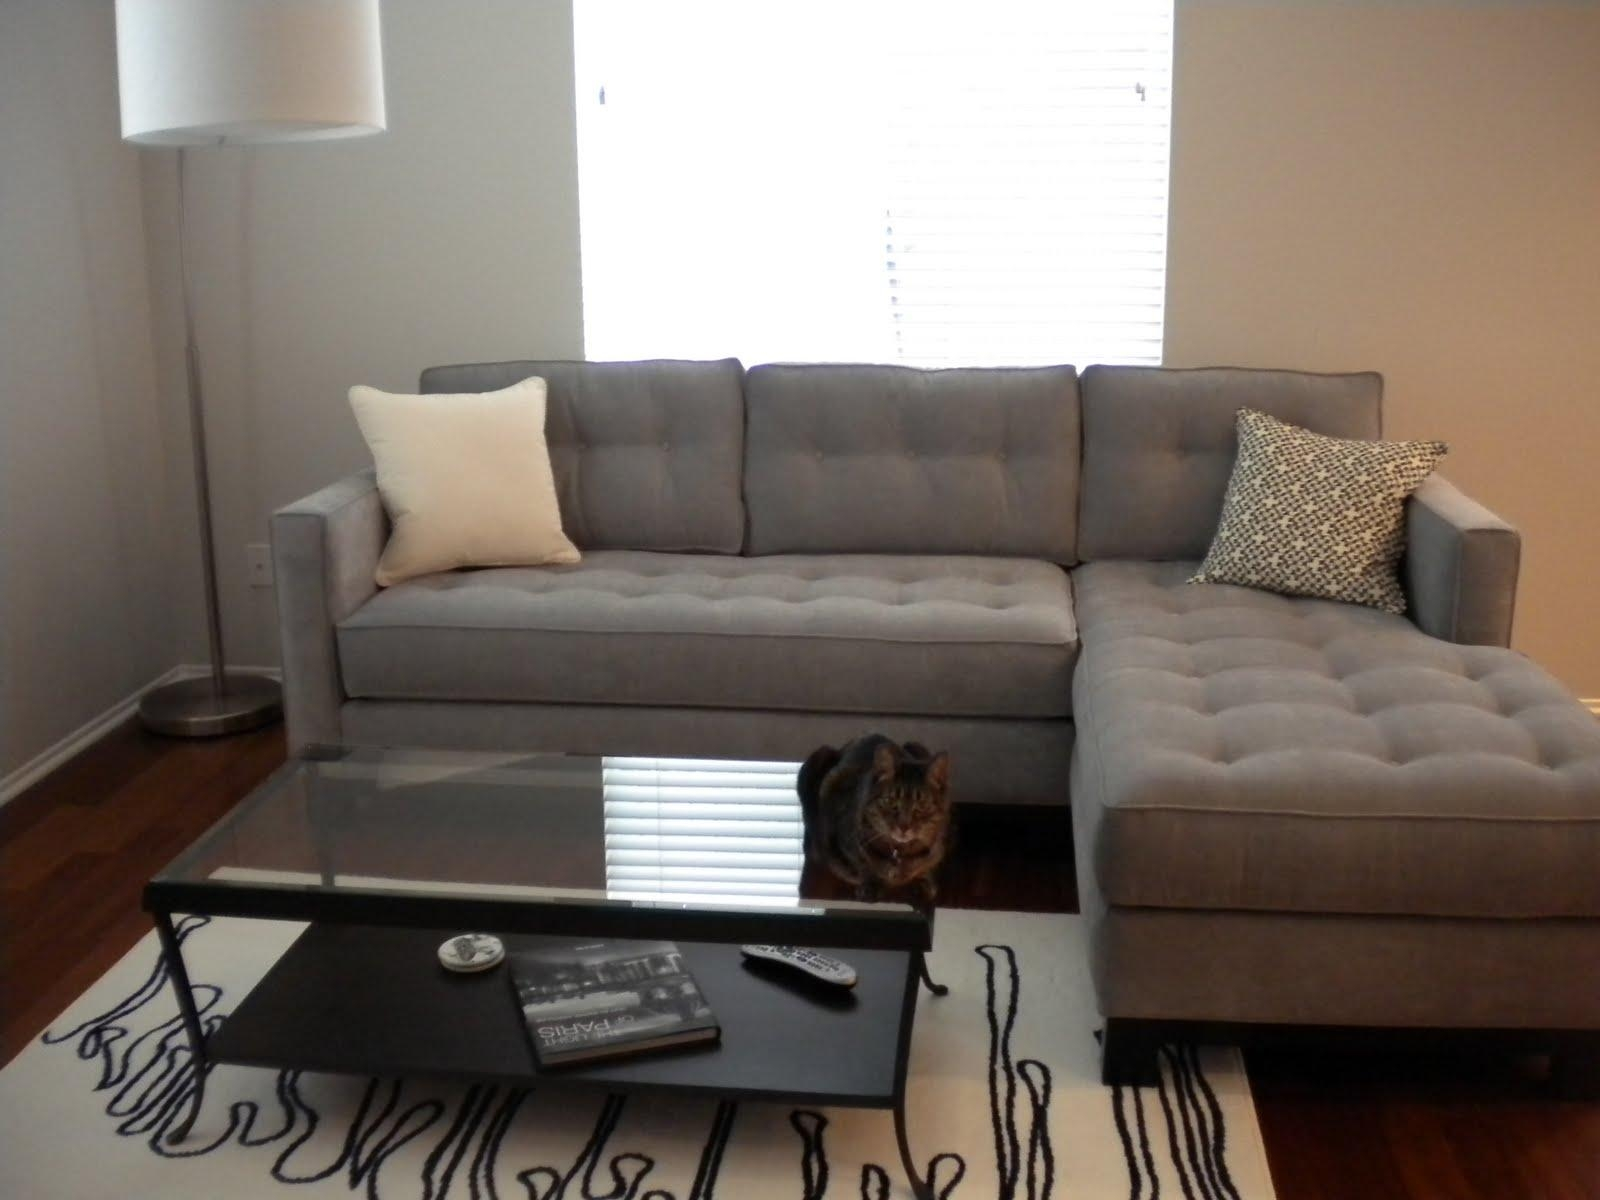 Furniture: Tufted Couch | Velvet Sectional Sofa | Blue Velvet Intended For Tufted Sectional Sofa Chaise (View 6 of 20)